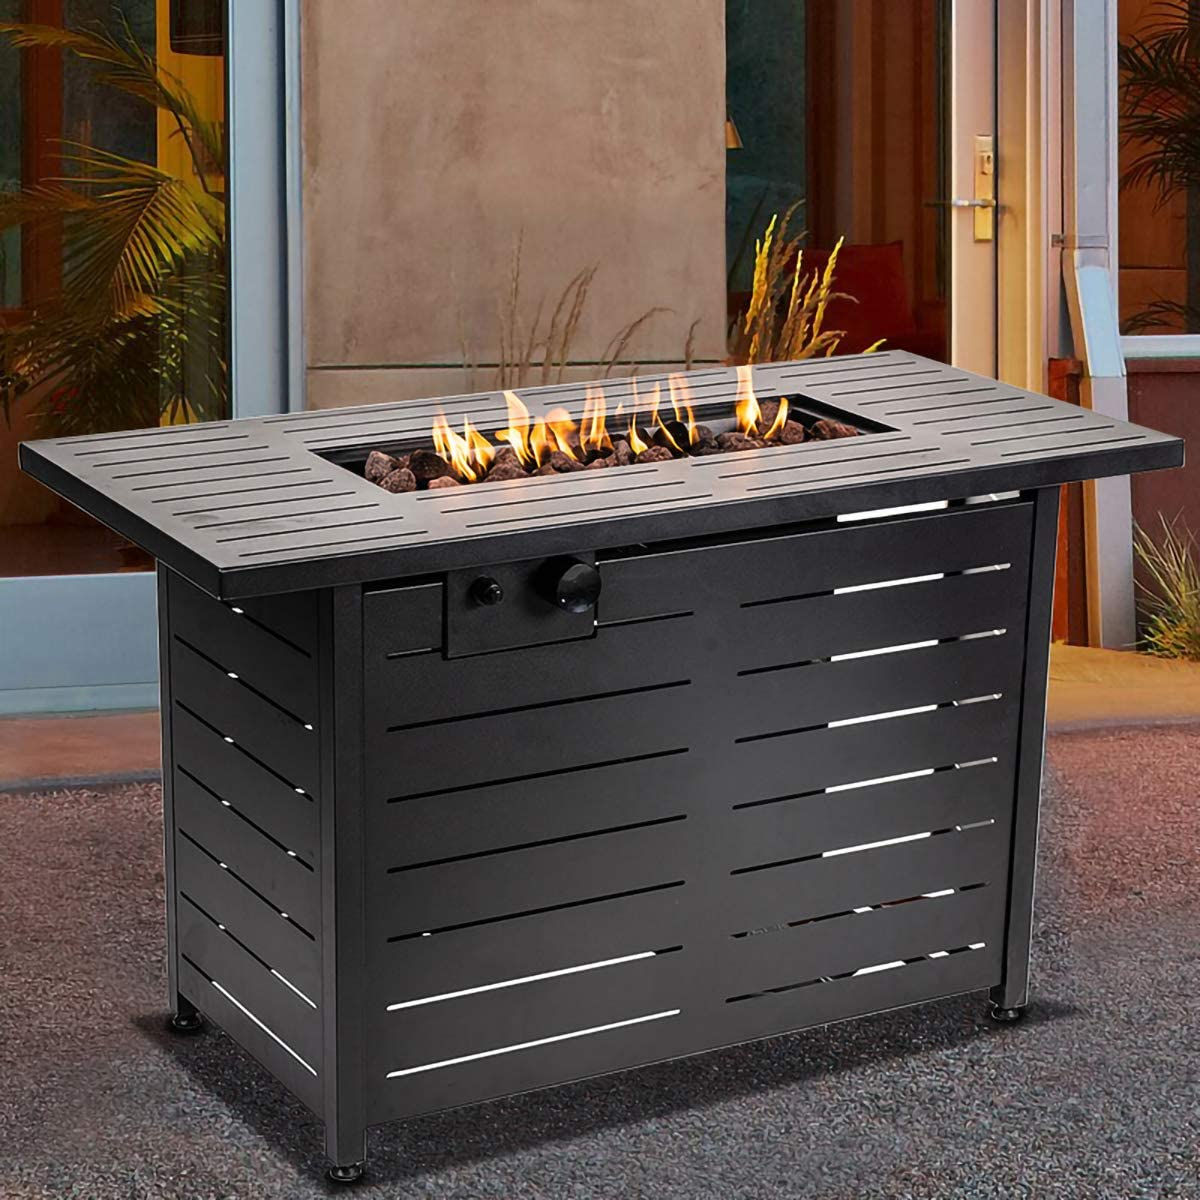 Sounity Propane Fire Pit Table Pit in Winter,42 Inch 60,000 BTU Rectangular Propane Gas Fire pits Auto-Ignition Gas Fire Pit Table with lid for Courtyard,Garden,Terrace Table in Summer